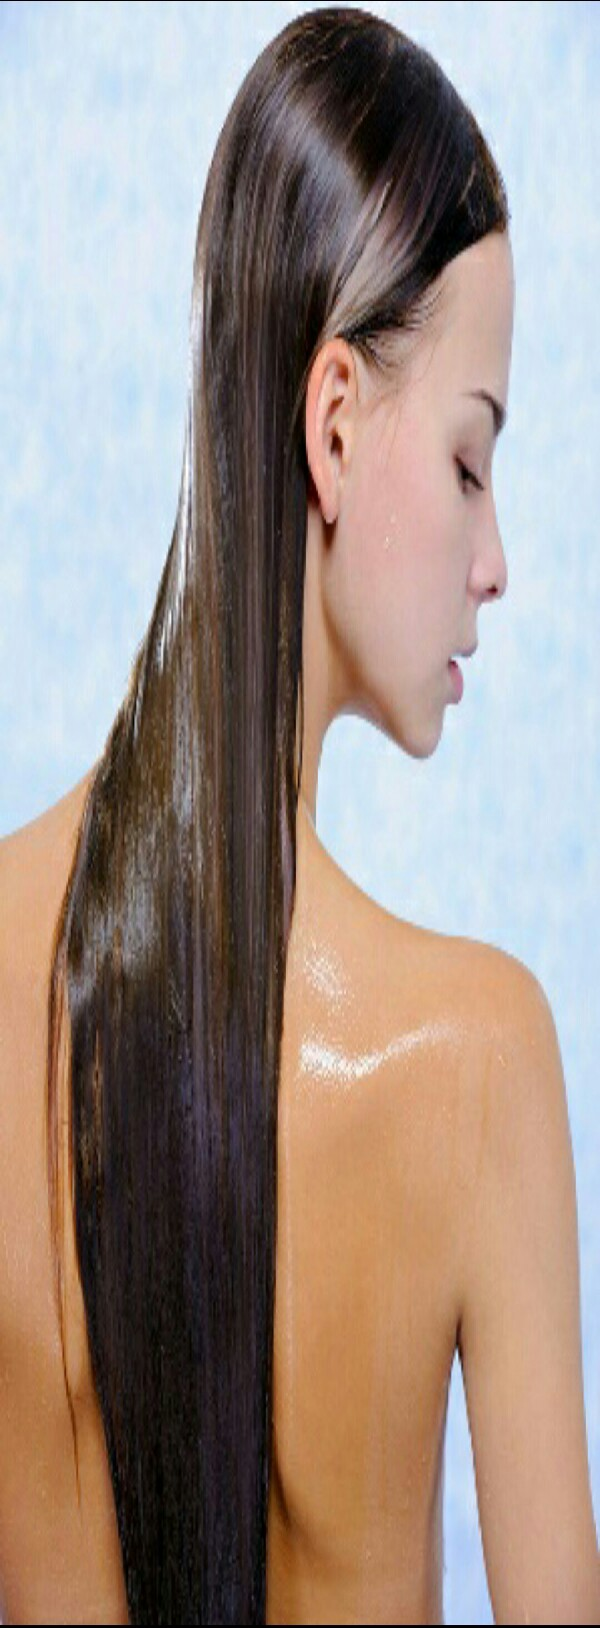 after a few hours (the longer you leave in the better) wash out the oil with a good shampoo and conditioner